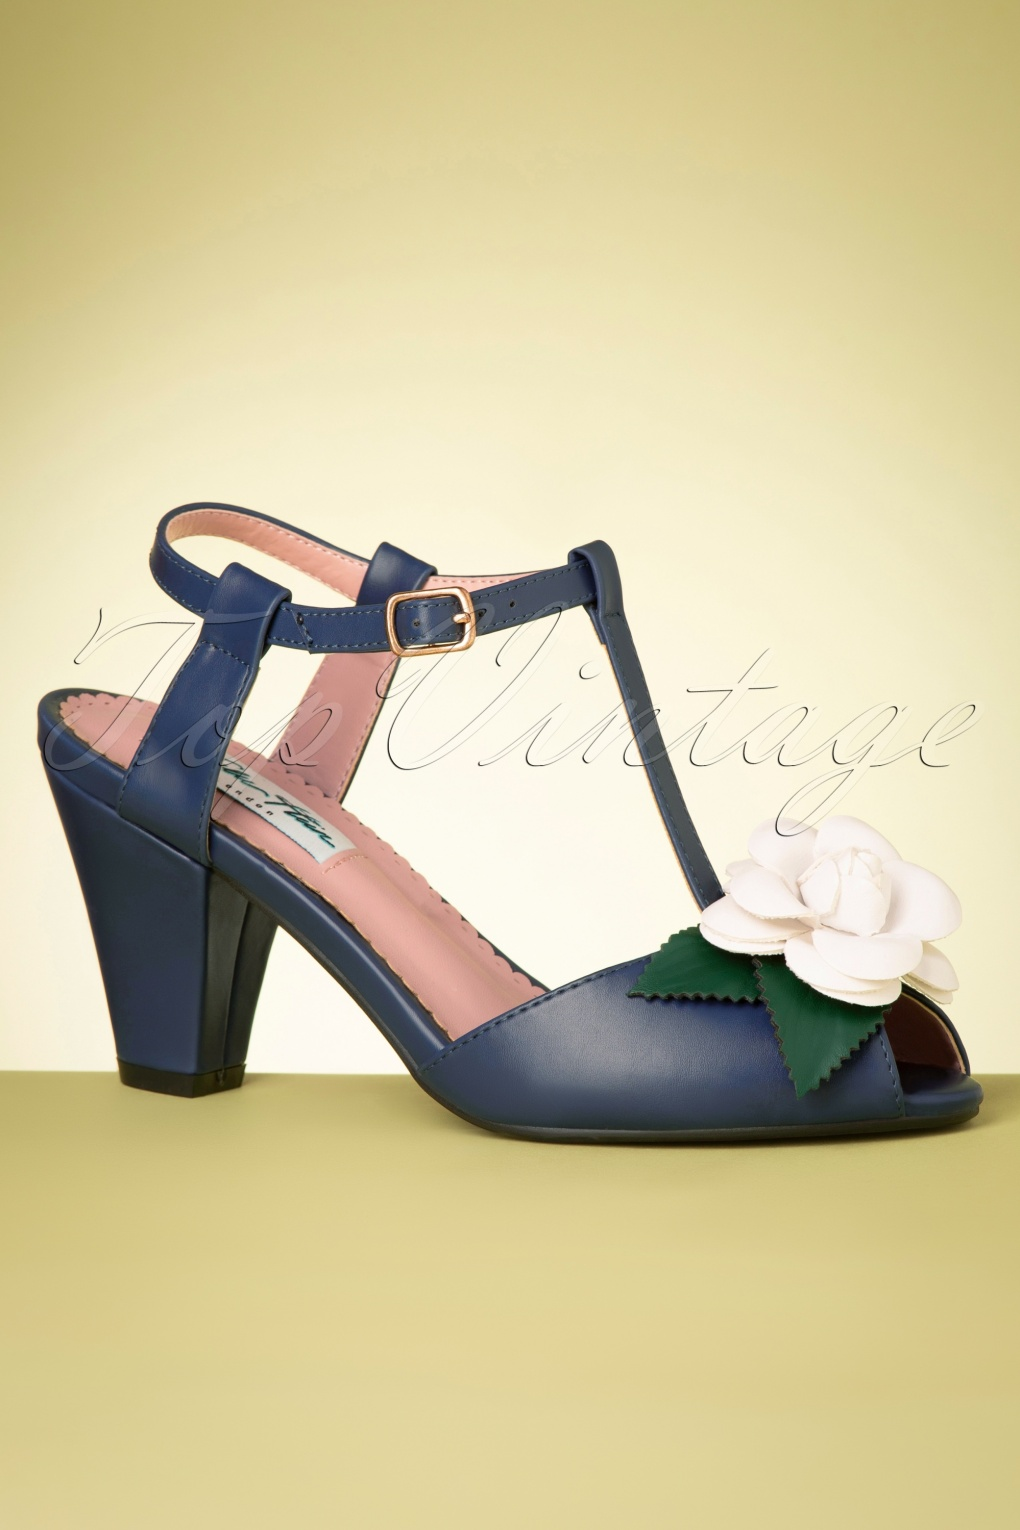 1950s Style Shoes | Heels, Flats, Boots 50s Rosa High Heeled T-Strap Sandals in Navy £47.57 AT vintagedancer.com